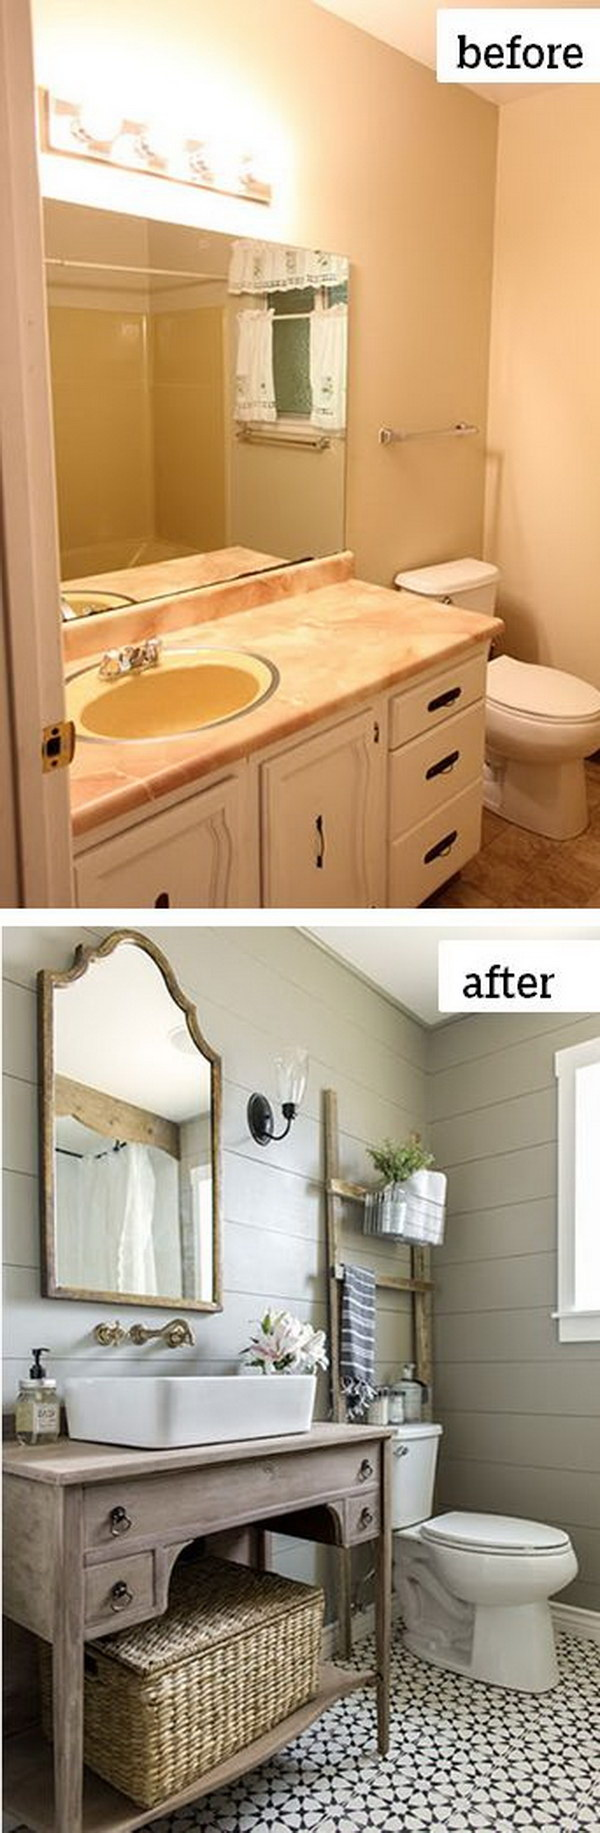 Surprising Before And After Makeovers 20 Most Beautiful Bathroom Best Image Libraries Thycampuscom